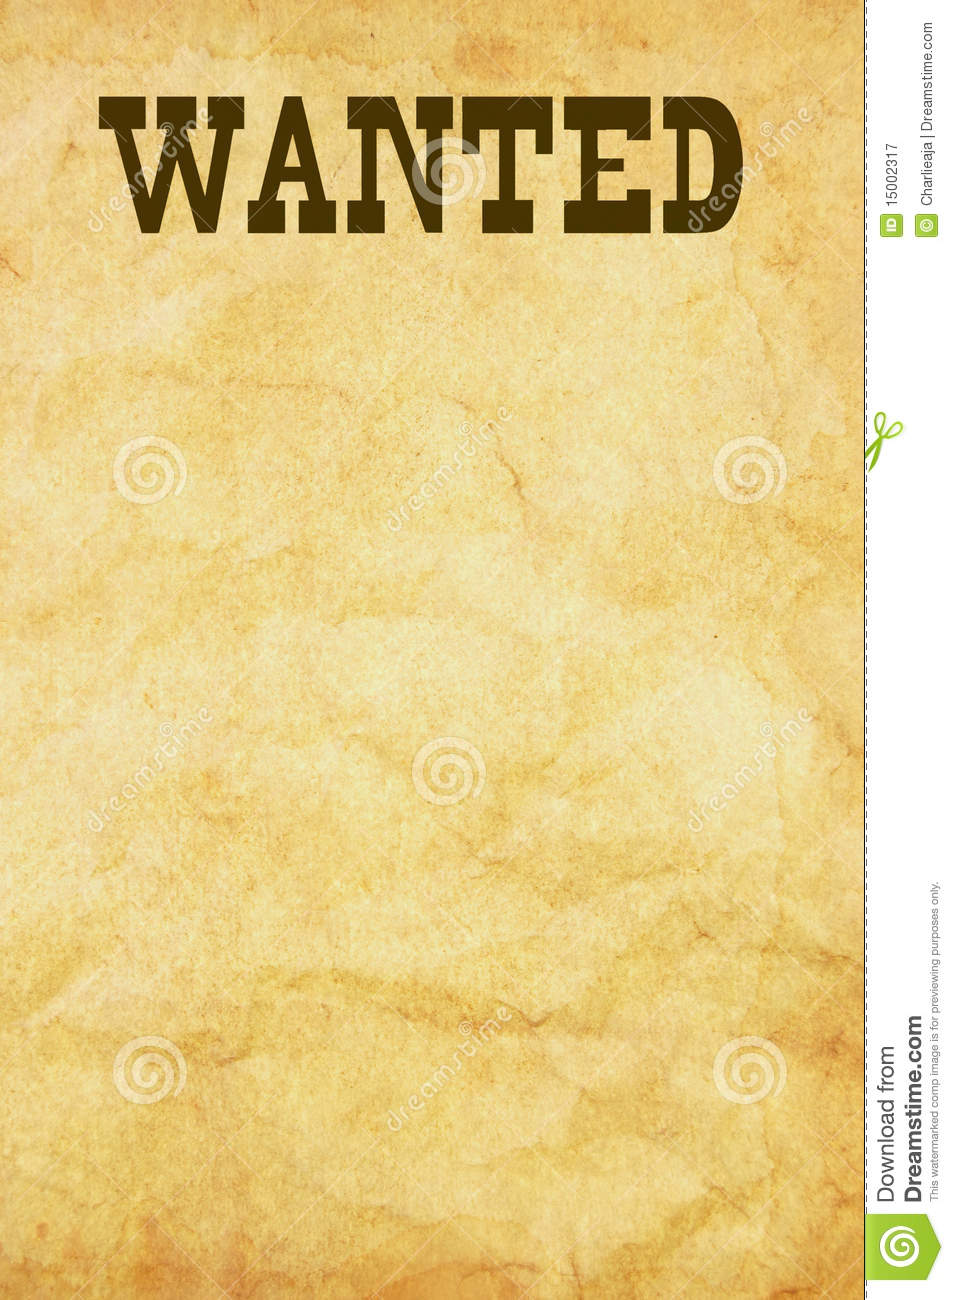 Wanted poster stock illustration Illustration of advert 15002317